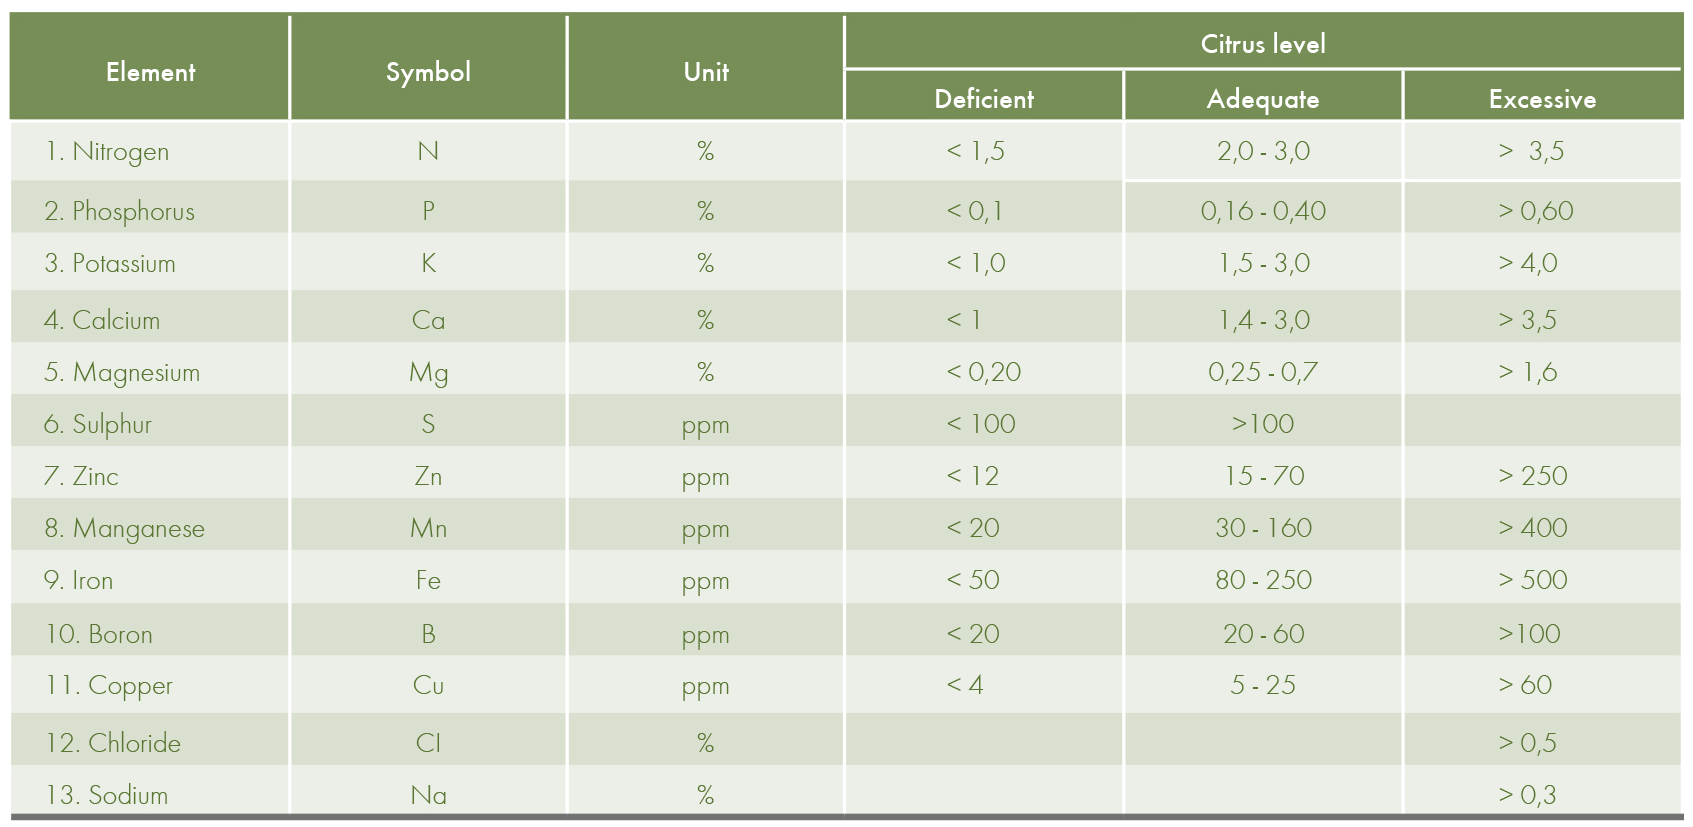 nutrients levels and their interpretation for cherry trees (dry weight)